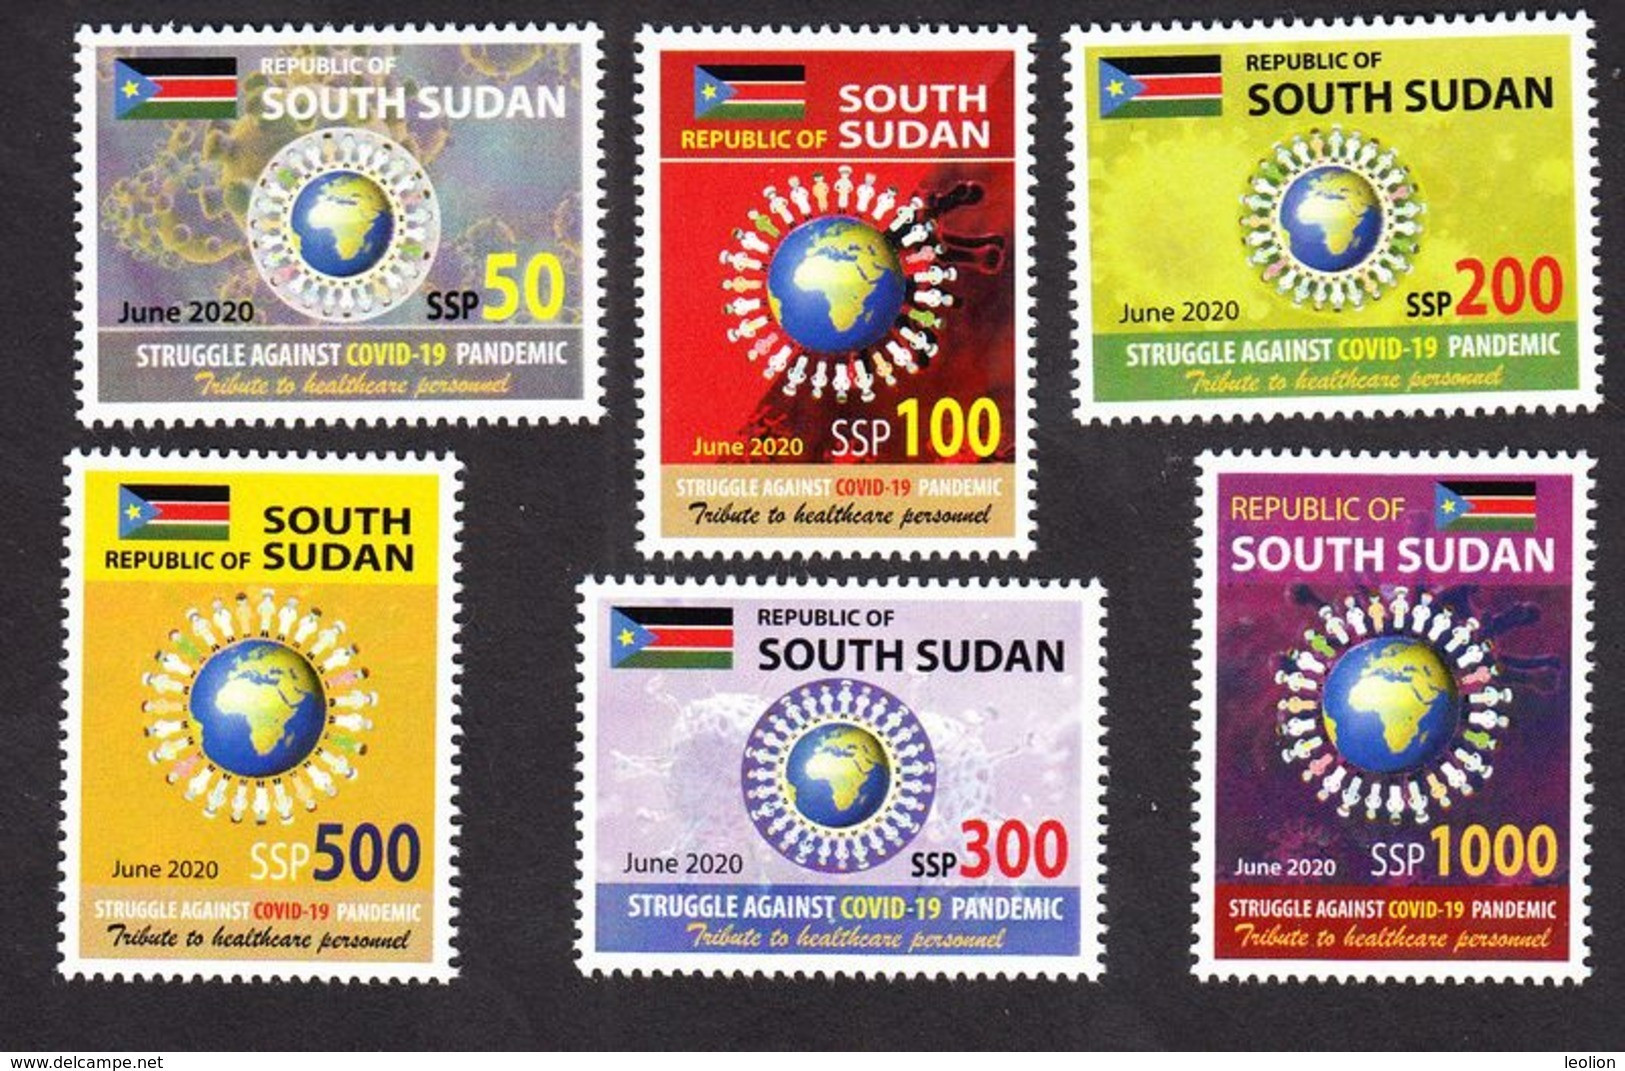 SOUTH SUDAN New 2020 Stamps Issue Health Workers Fighting Covid-19 Pandemic SOUDAN Du Sud Südsudan - South Sudan